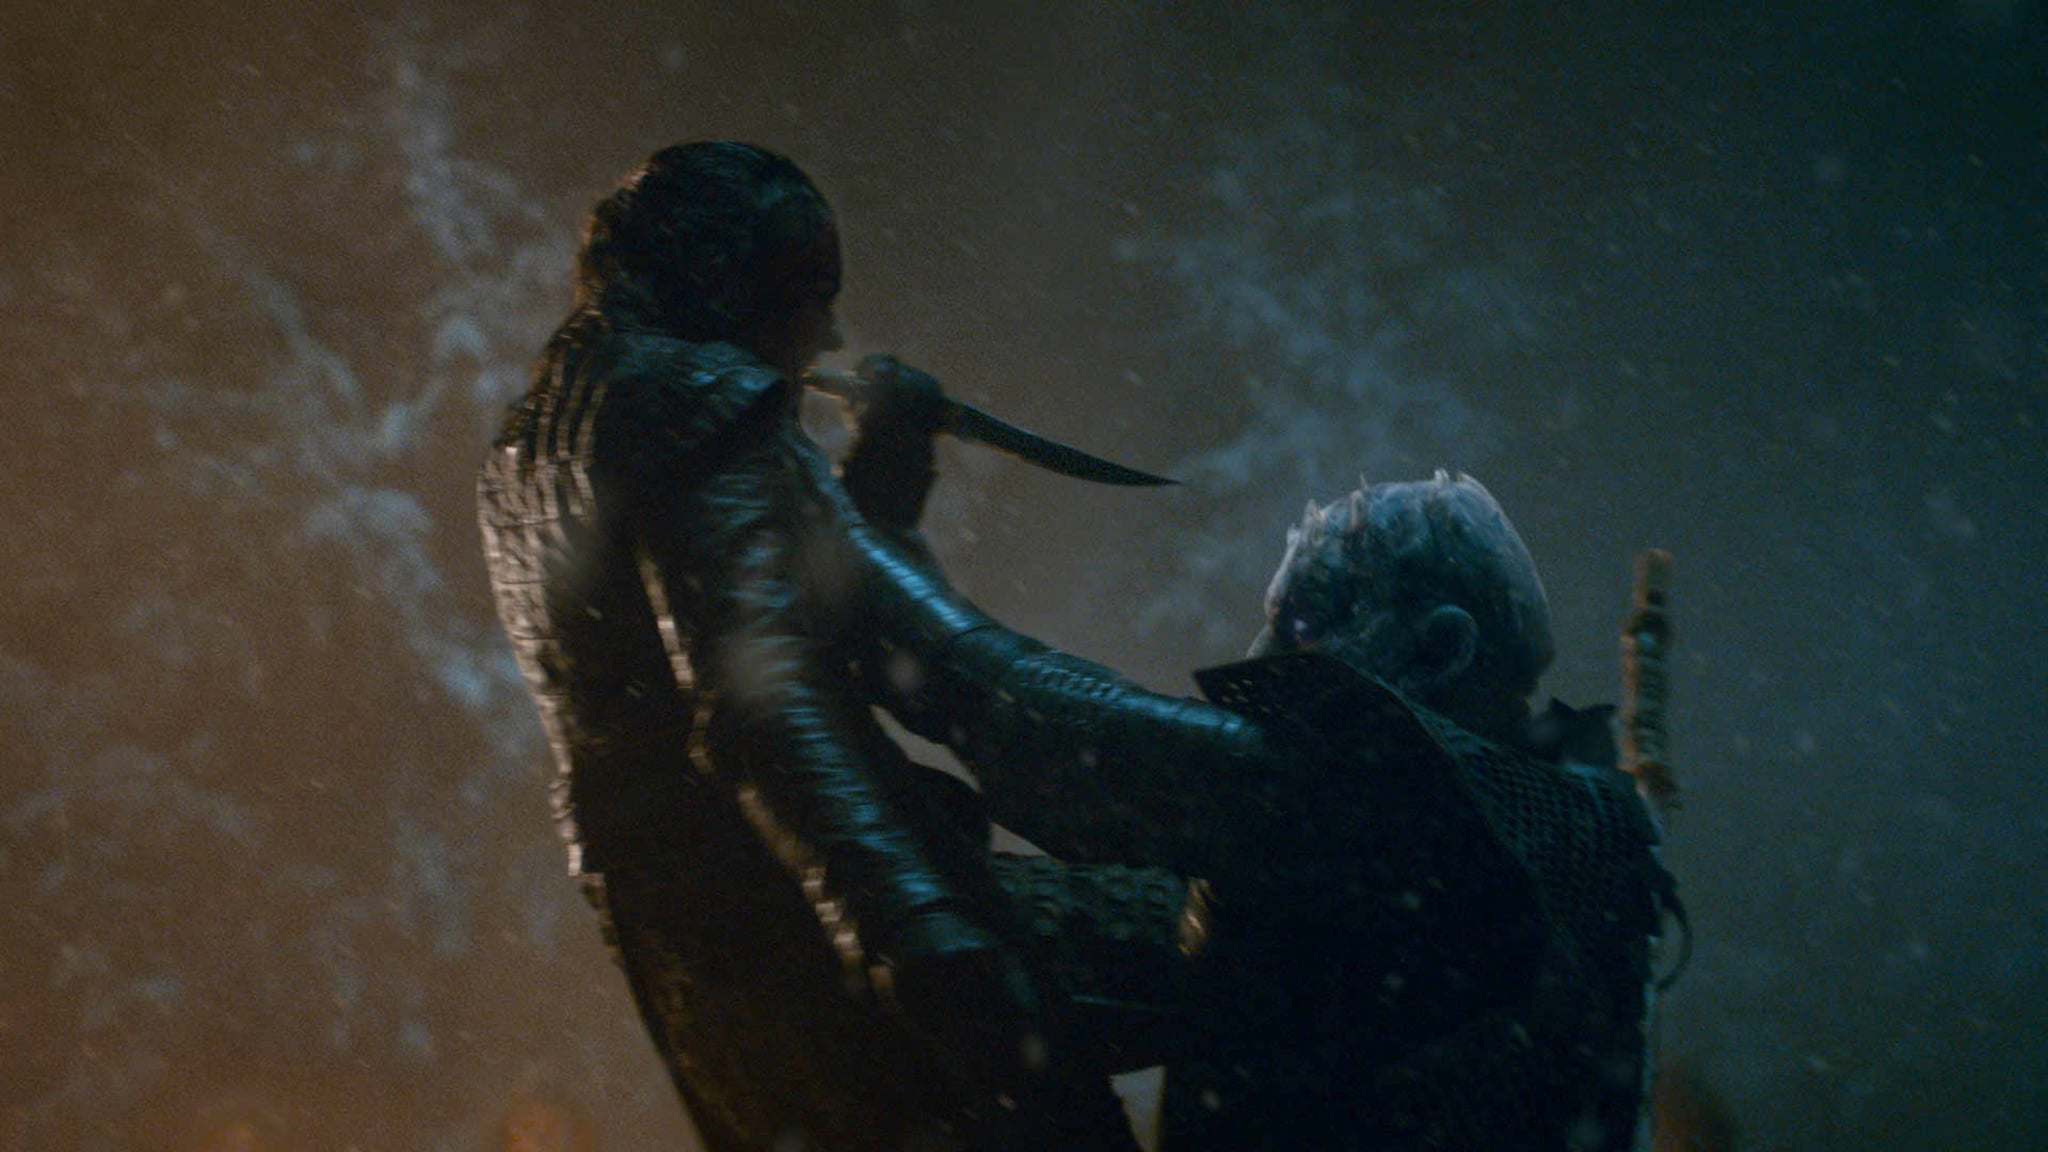 Watch Game of Thrones Season 8 Episode 3 : Game of Thrones S4x3 Online In High Definition